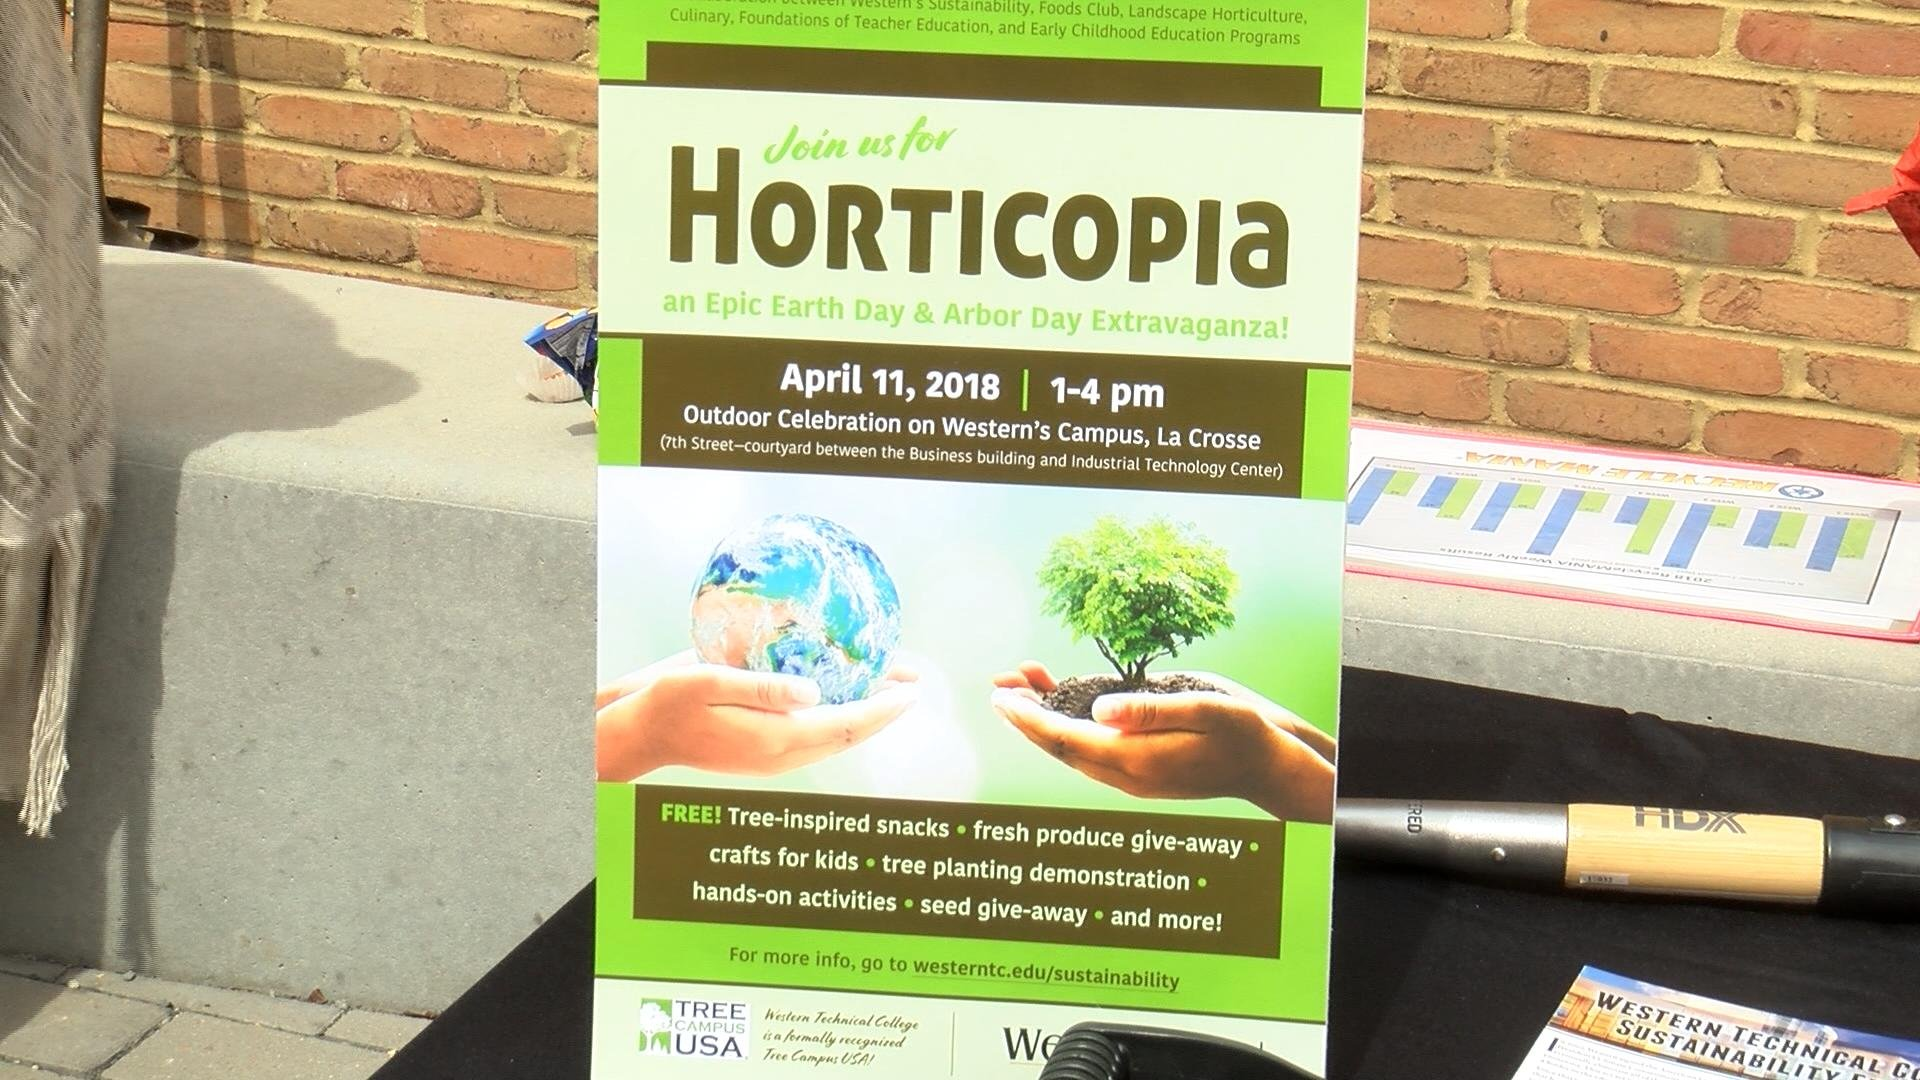 Western technical college holds horticopia event wxow news 19 la western technical college holds horticopia event wxow news 19 la crosse wi news weather and sports thecheapjerseys Images